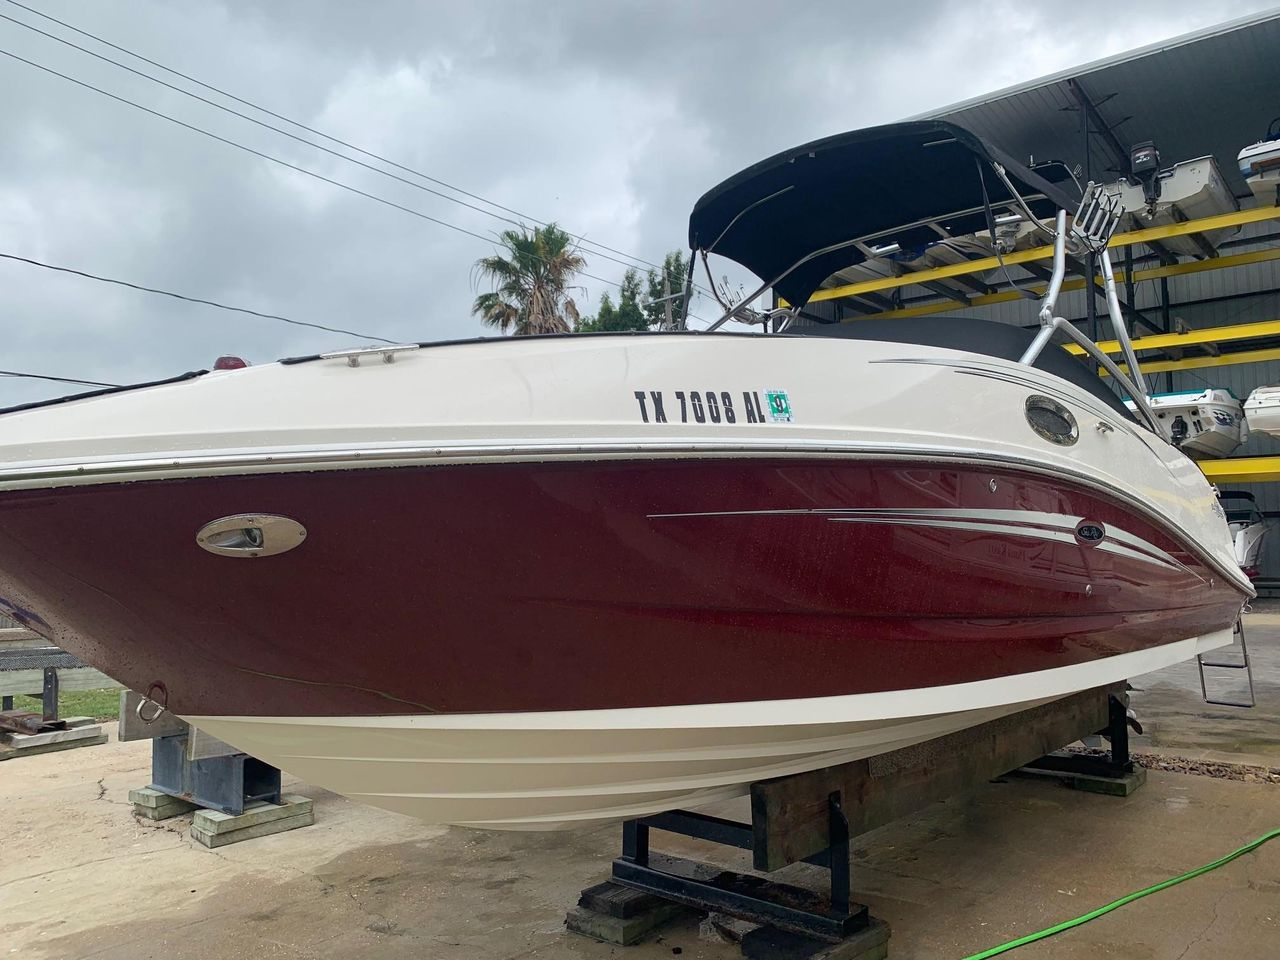 2007 Used Sea Ray 260 Sundeck Bowrider Boat For Sale